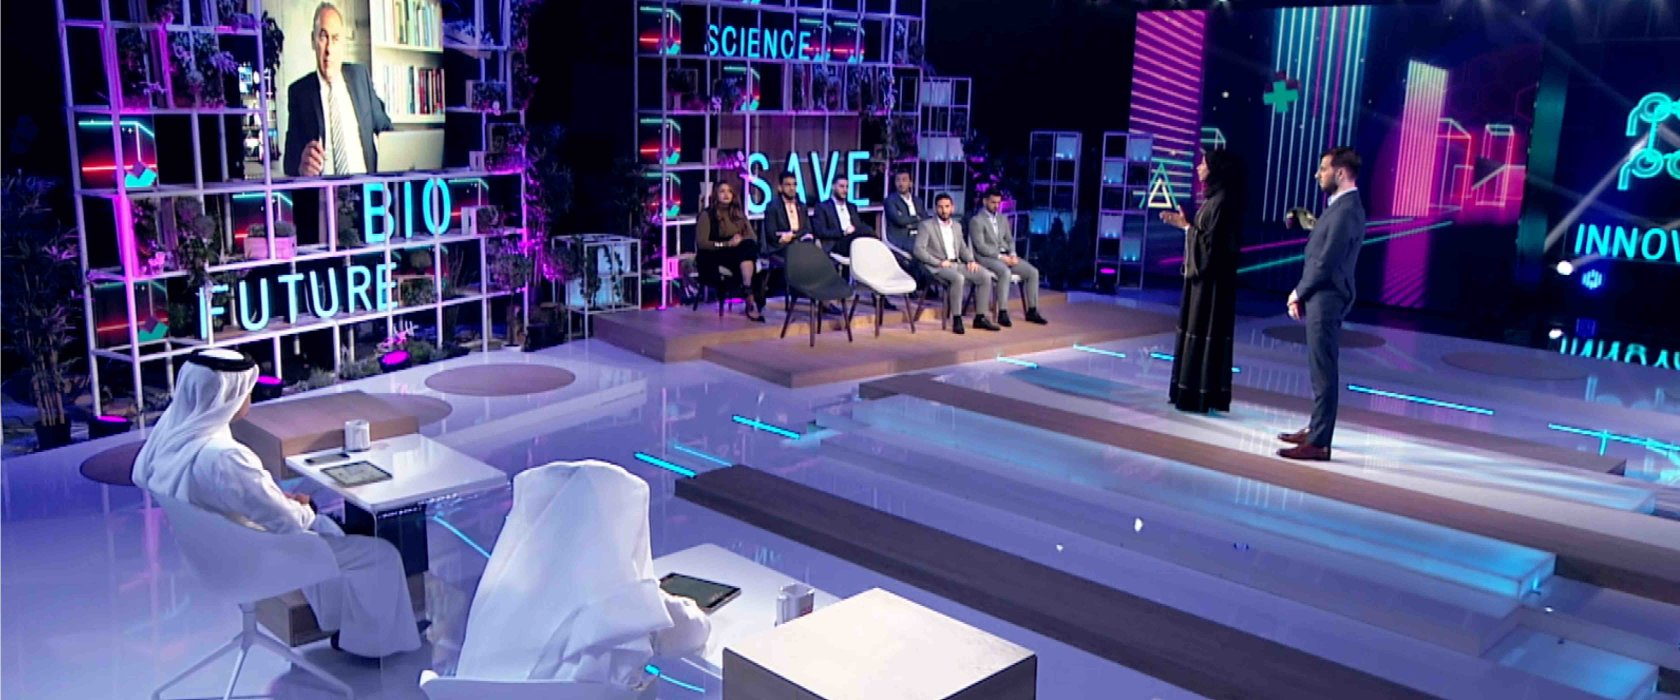 TV Review: COVID-19 separates the Stars of Science jury – but a surprise keeps the inventors together